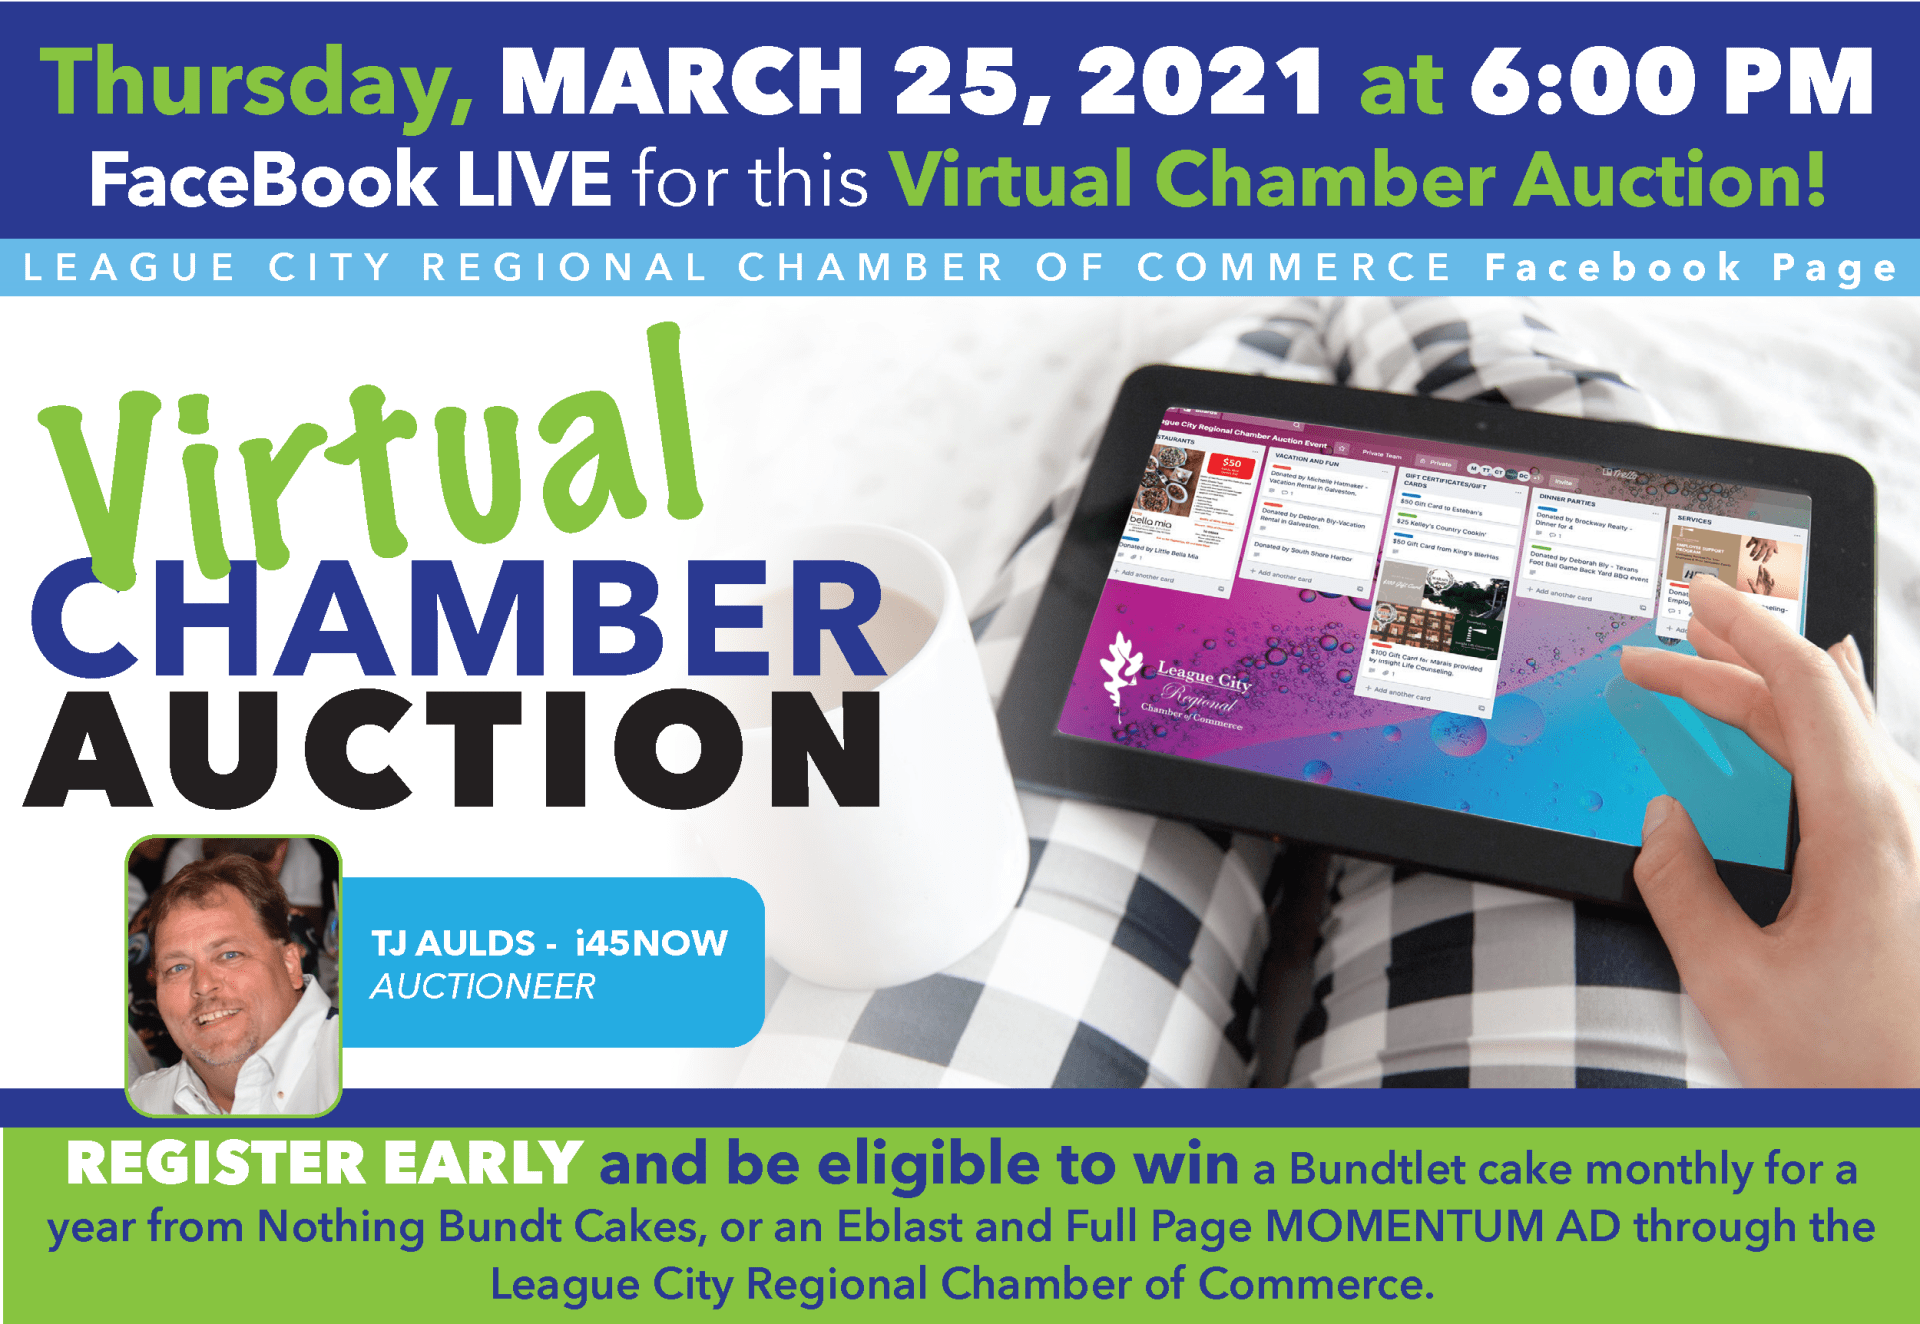 CHAMBER-VIRTUAL-AUCTION_3.25.21-TEASER-w1920.png